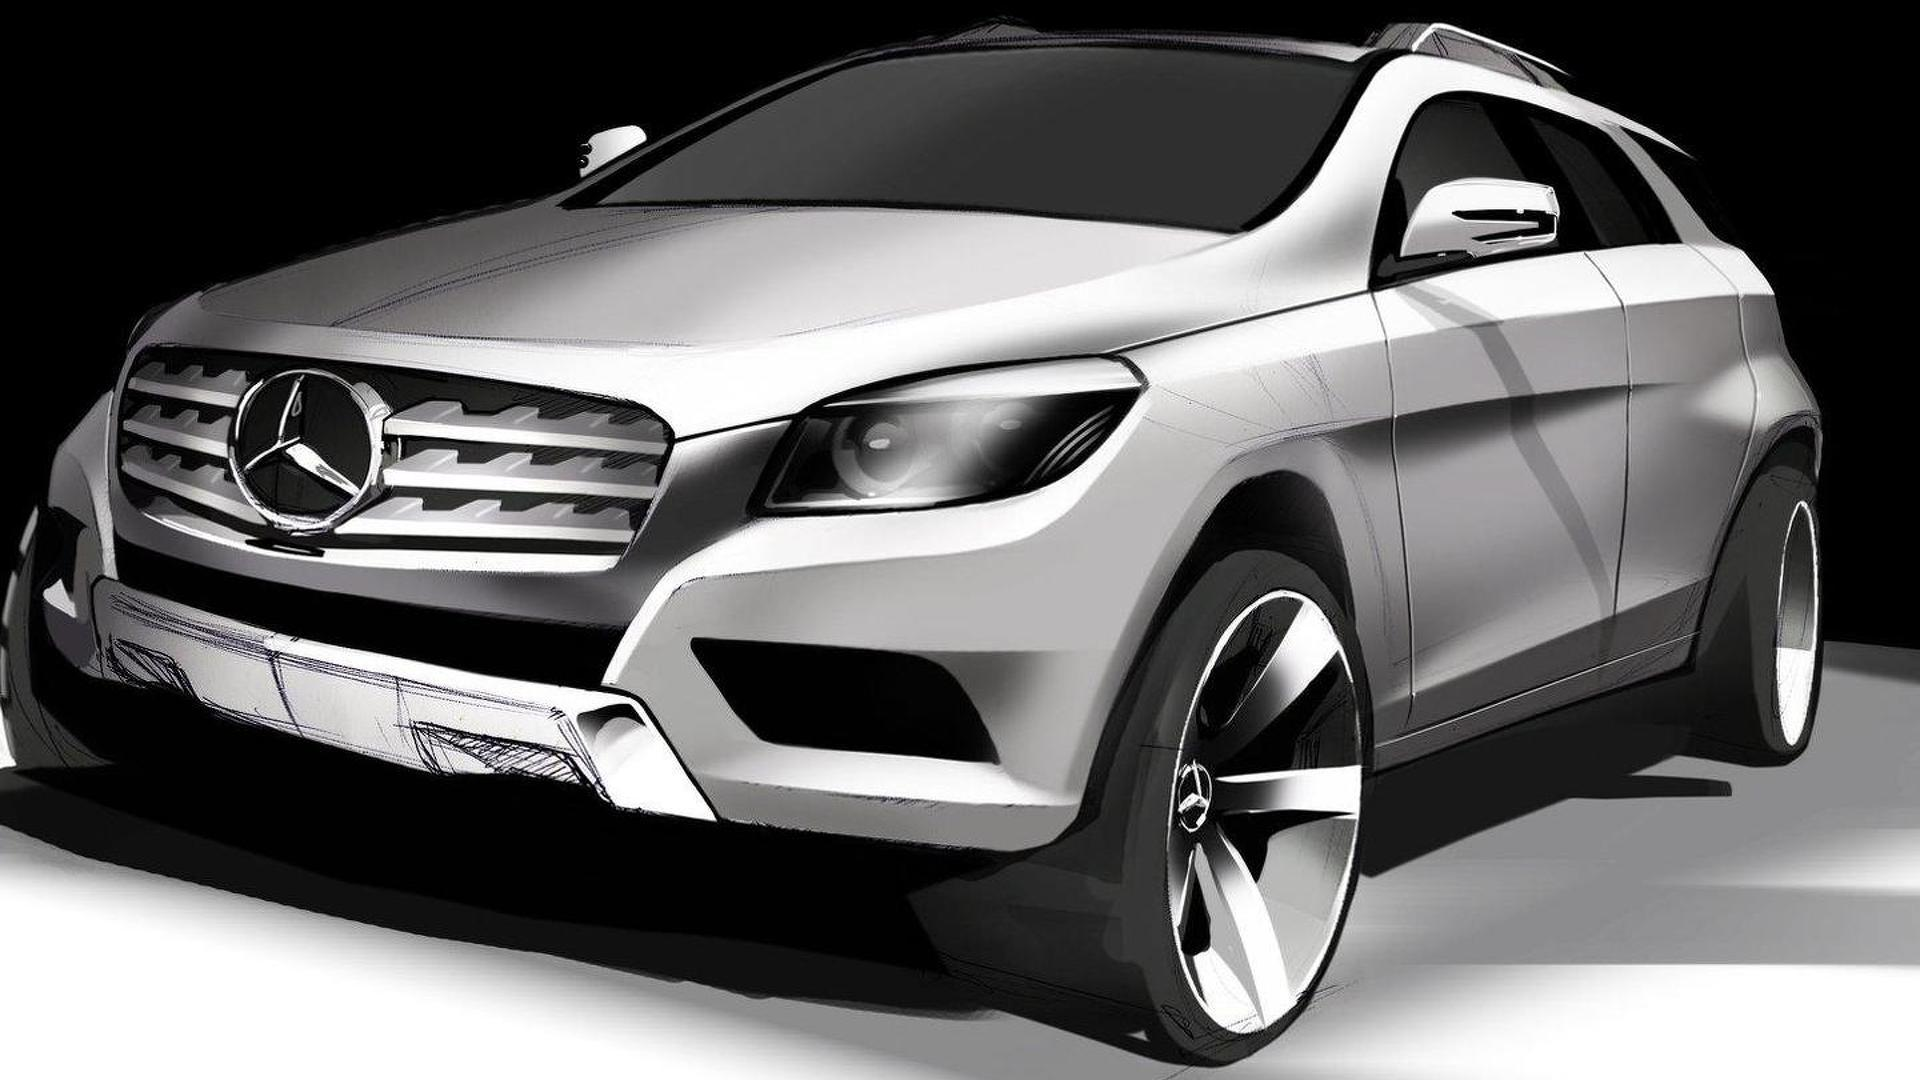 mercedes benz planning mlc to rival bmw x6. Black Bedroom Furniture Sets. Home Design Ideas